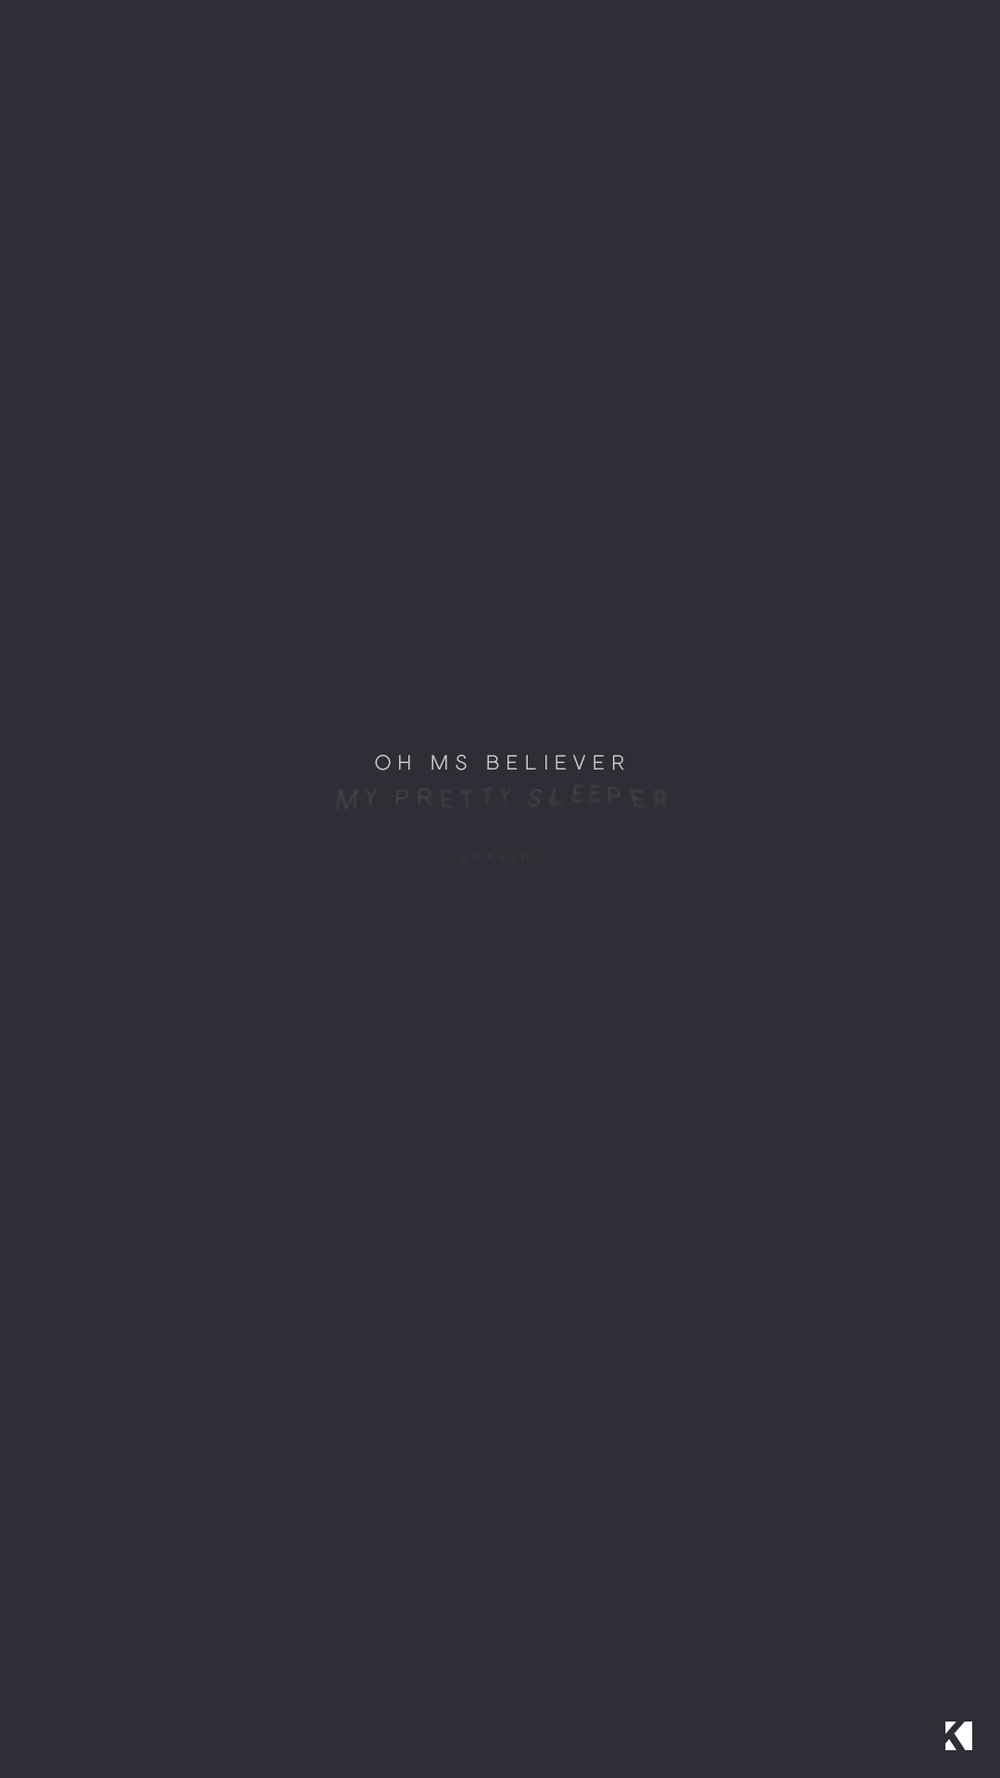 Oh Ms Believer Lyrics | Wallpapers by KAESPO Design